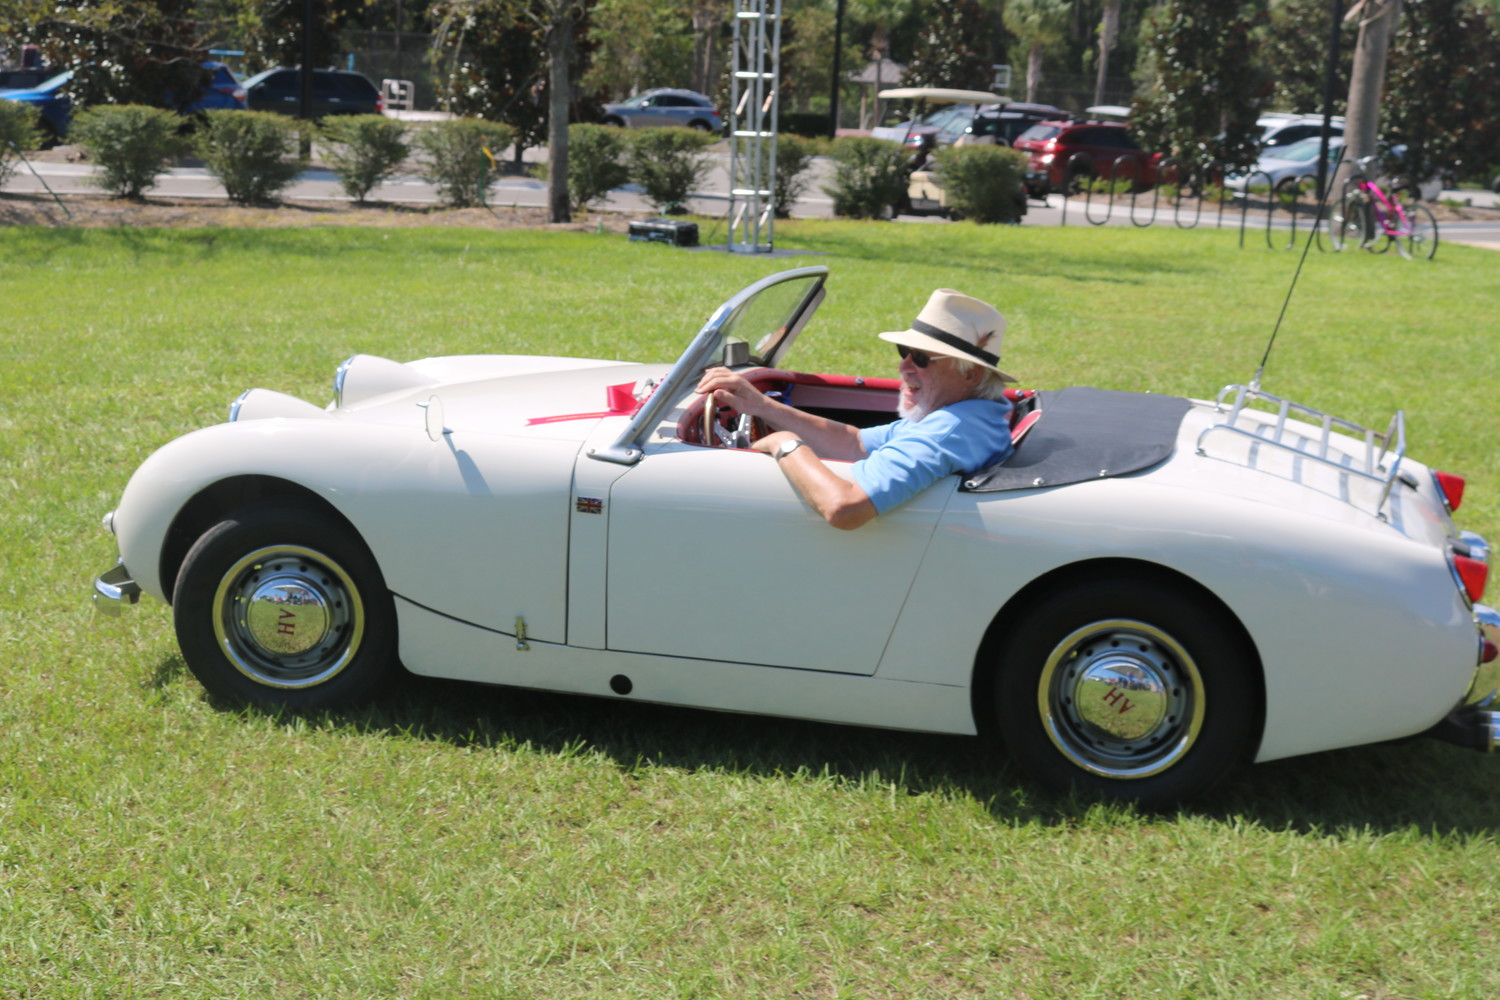 Bill Young parades his 1960 Austin-Healey Bugeye, which was awarded the Best in Show 60th Anniversary of Austin- Healey sponsored by Meehan's Irish Pub.